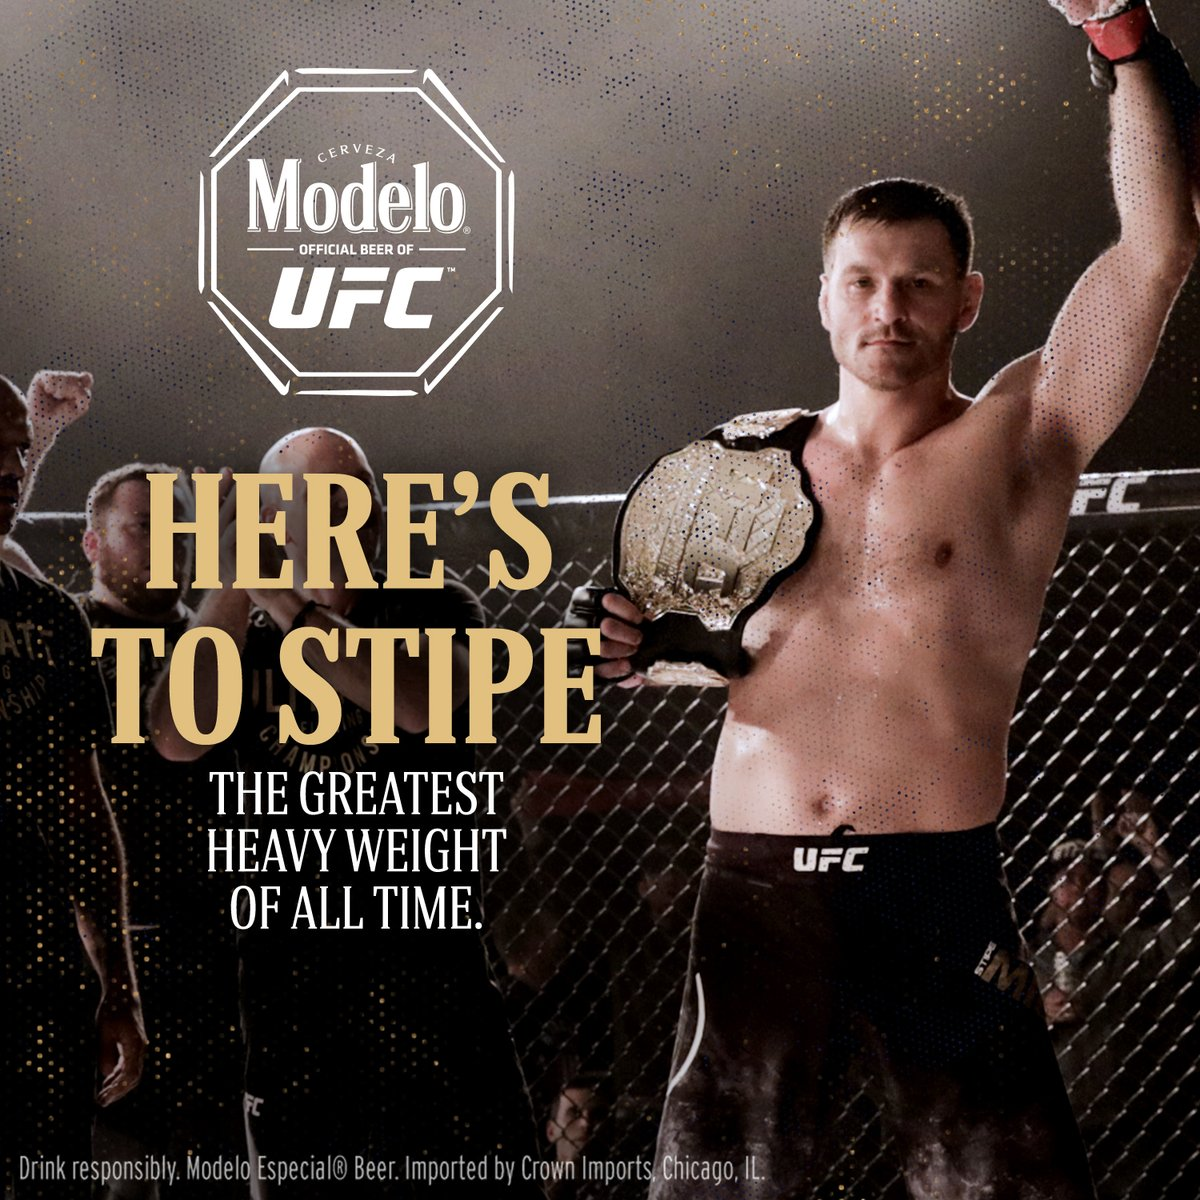 Stipe and his Fighting Spirit were on full display last night to take it all @UFC 252. Congratulations on another well-deserved win @stipemiocic ¡Salud! https://t.co/6B4Tjyp9M5